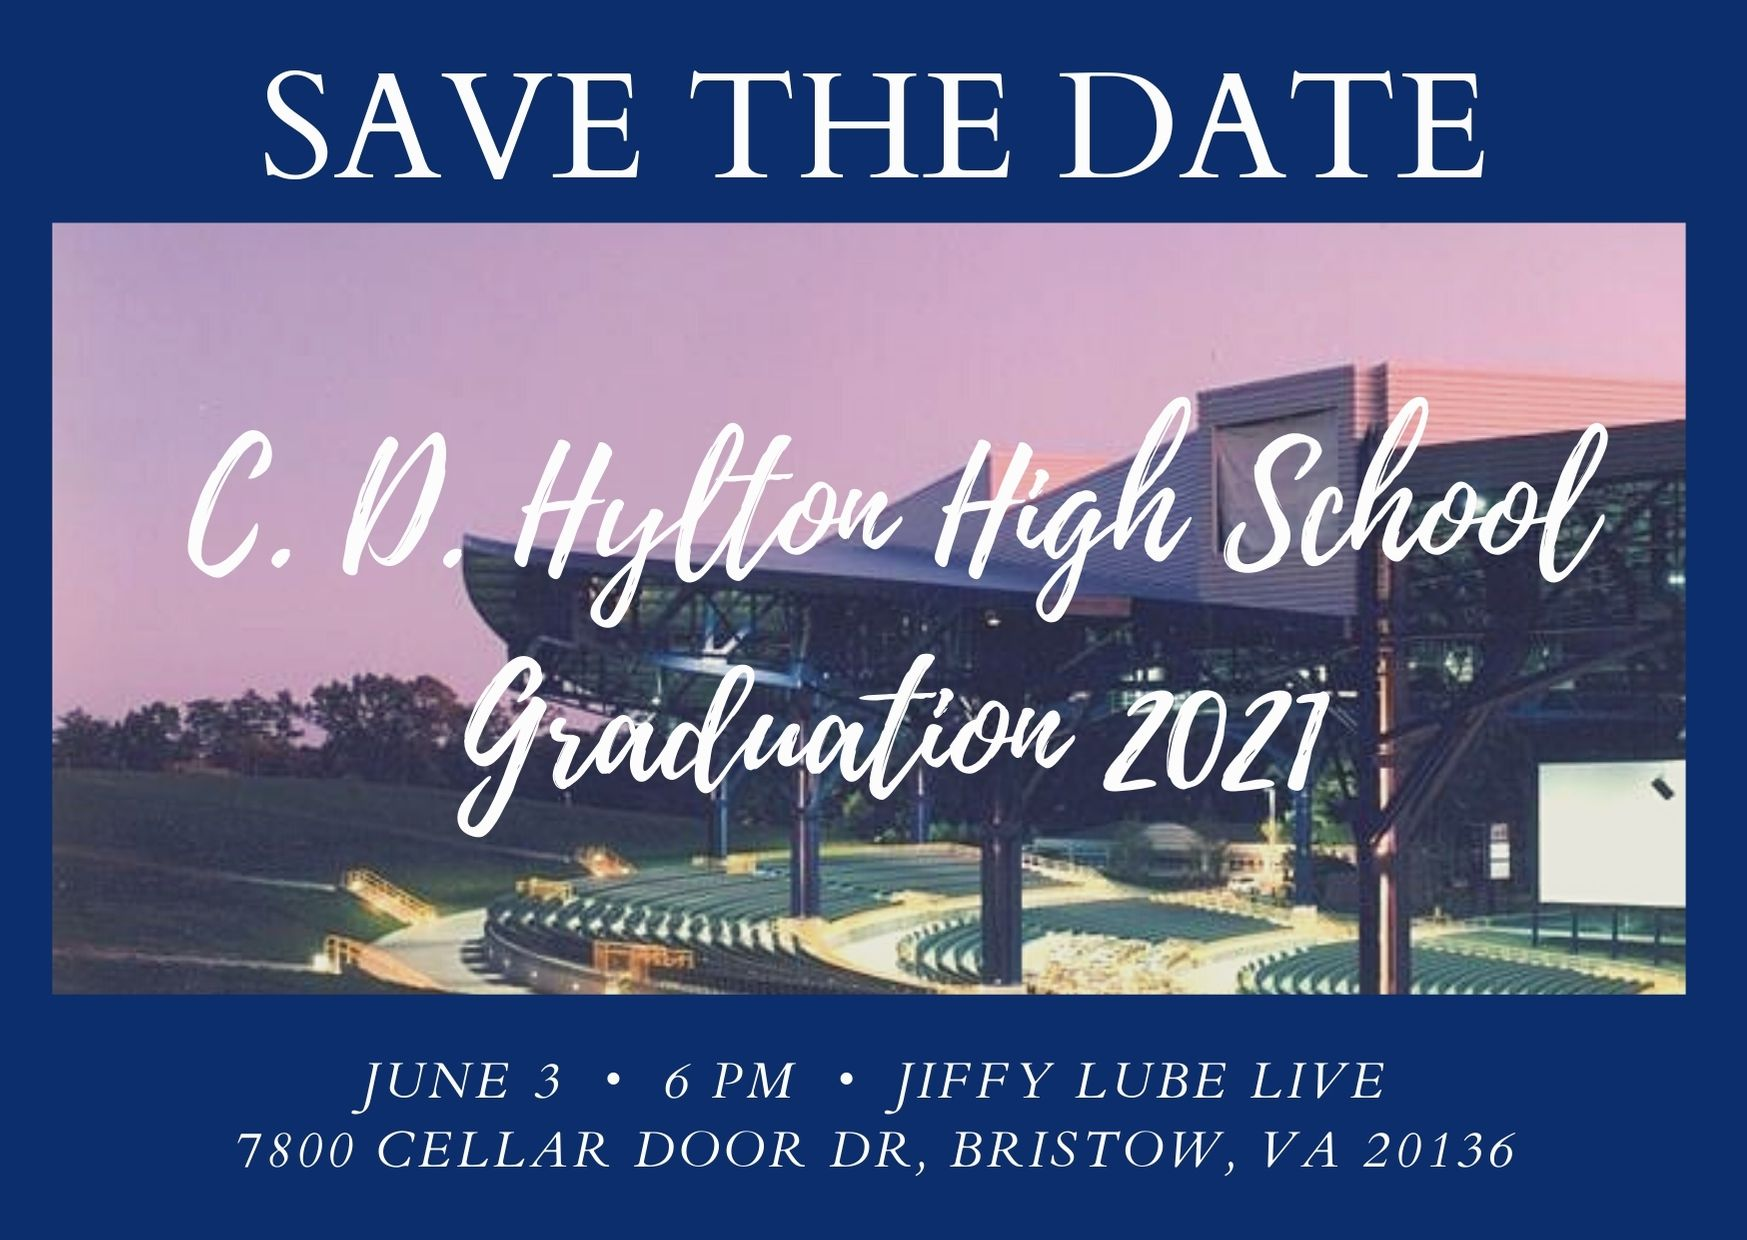 Save the Date C. D. Hylton Graduation 2021 June 3 - 6 PM - Jiffy Lube Live Additional Details to follow